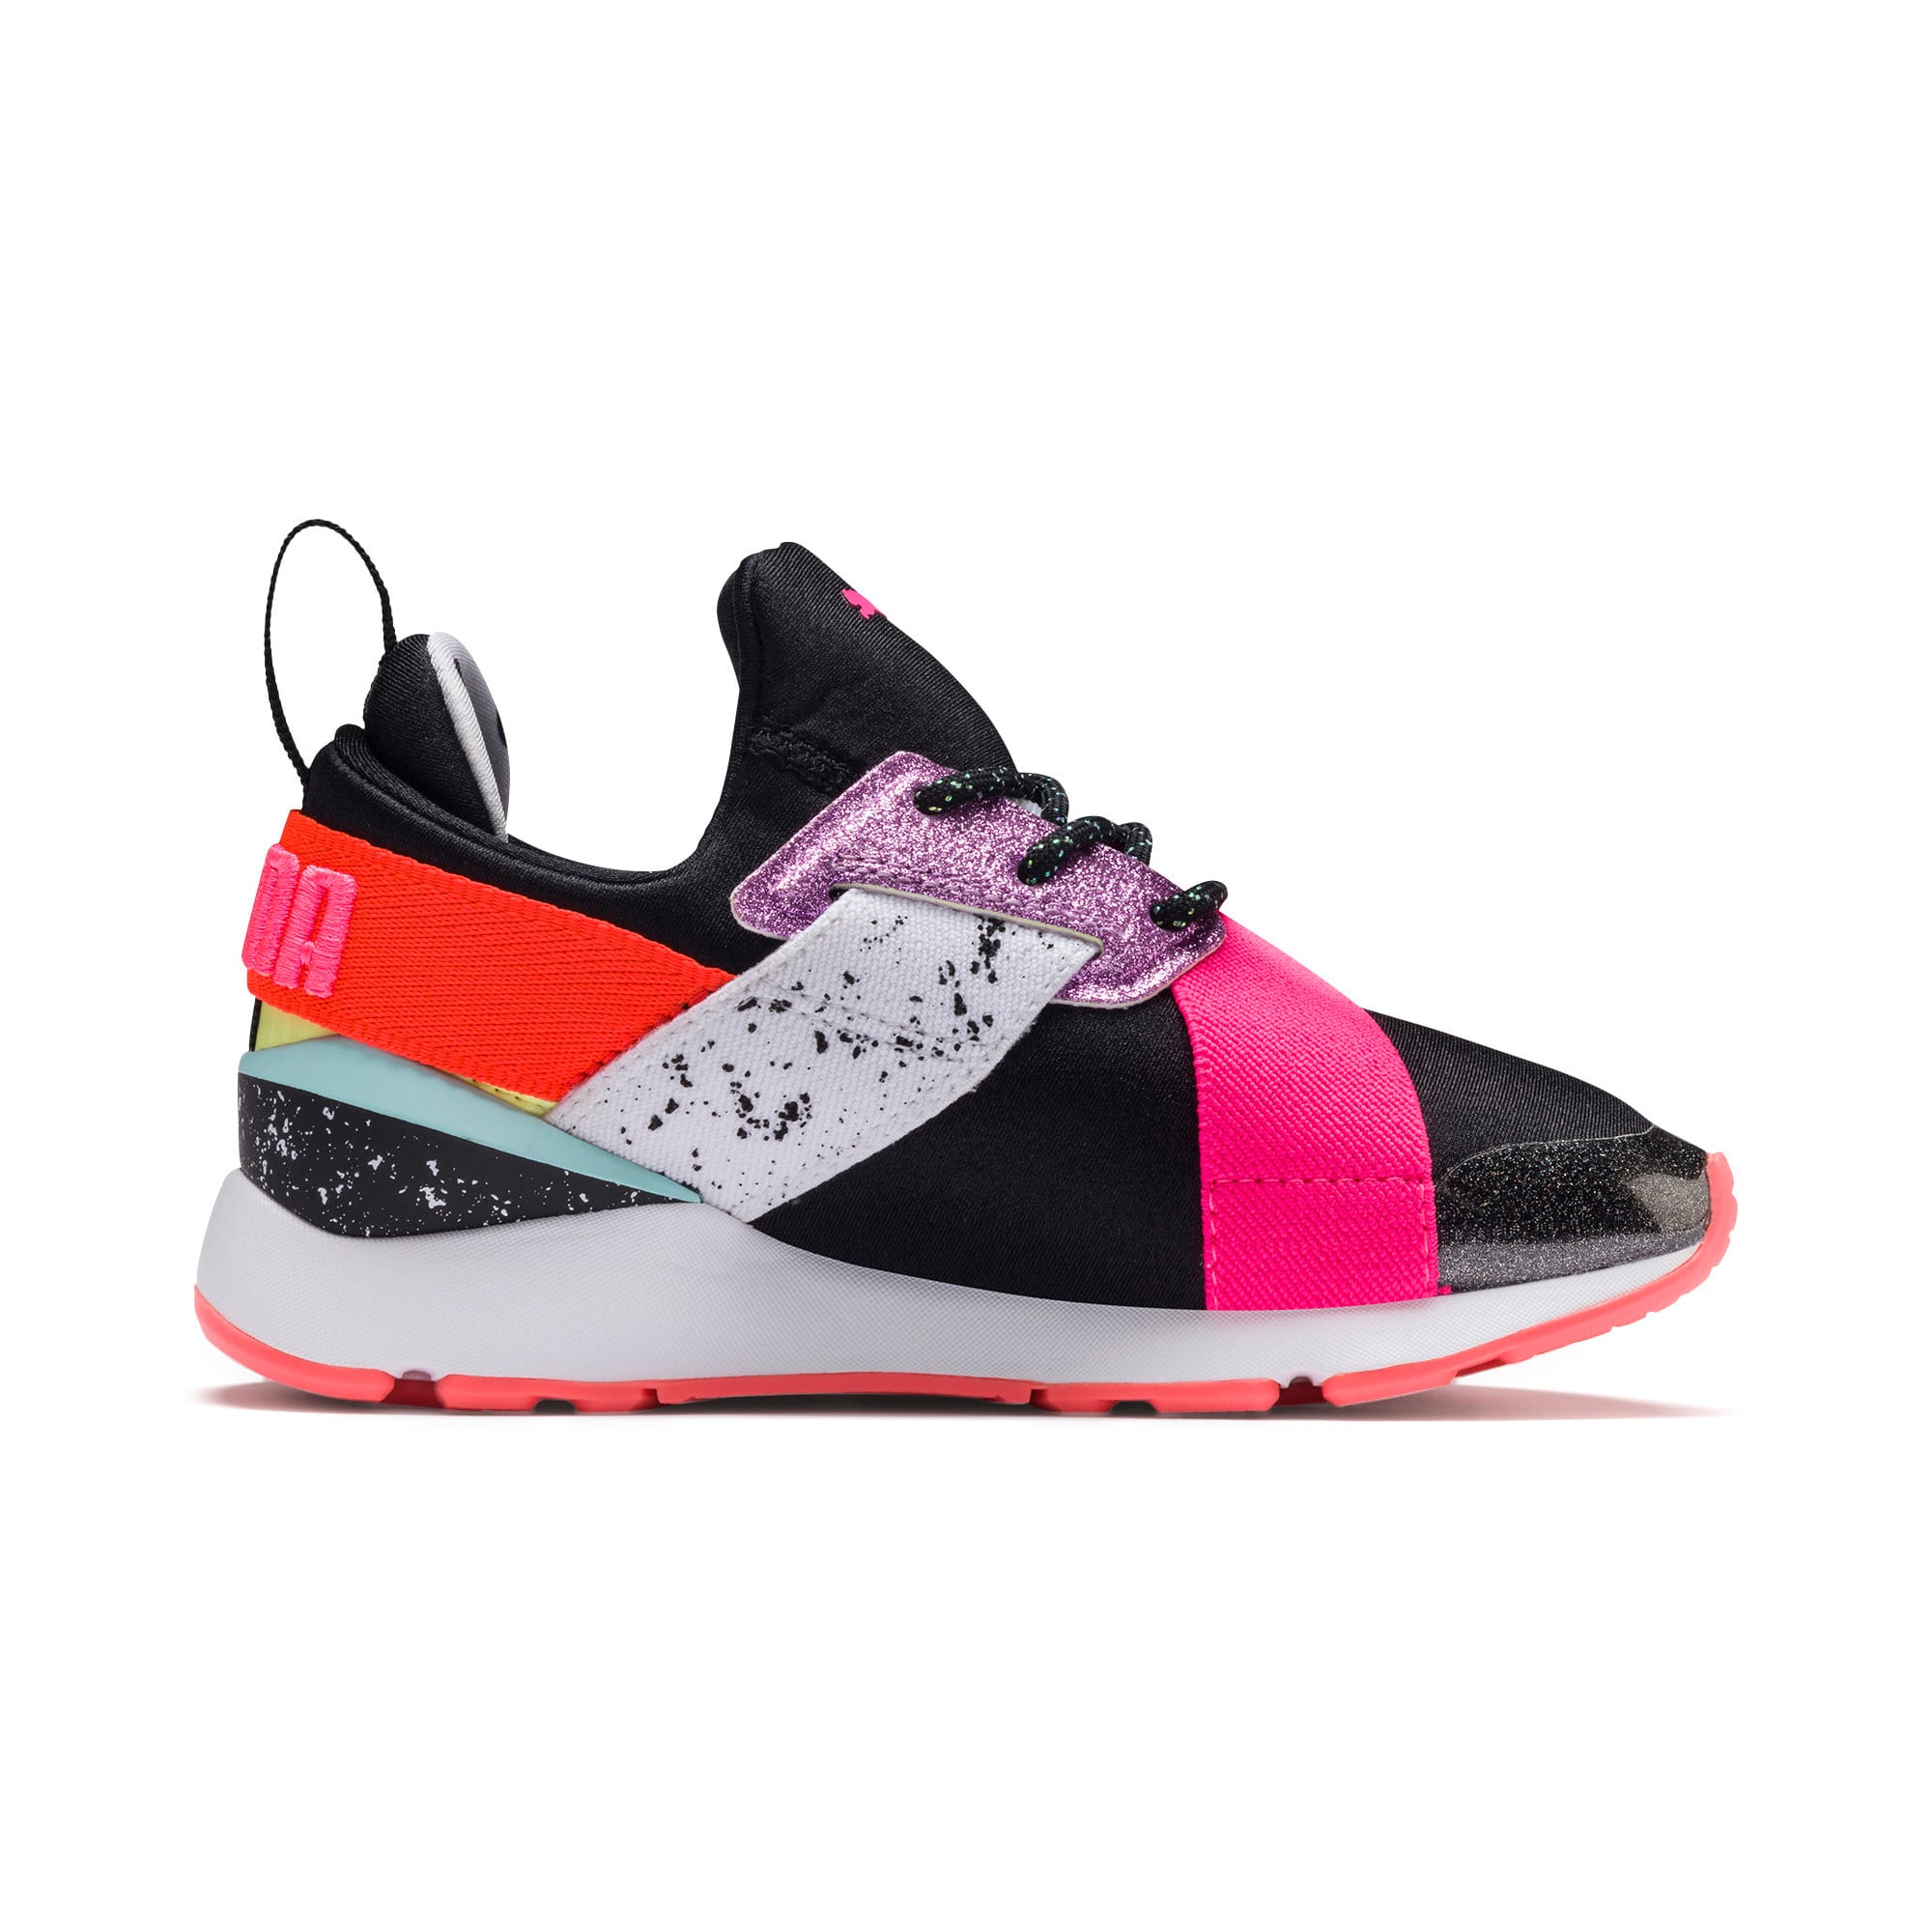 Thumbnail 4 of PUMA x SOPHIA WEBSTER Muse Little Kids' Shoes, Puma Black-Puma White, medium